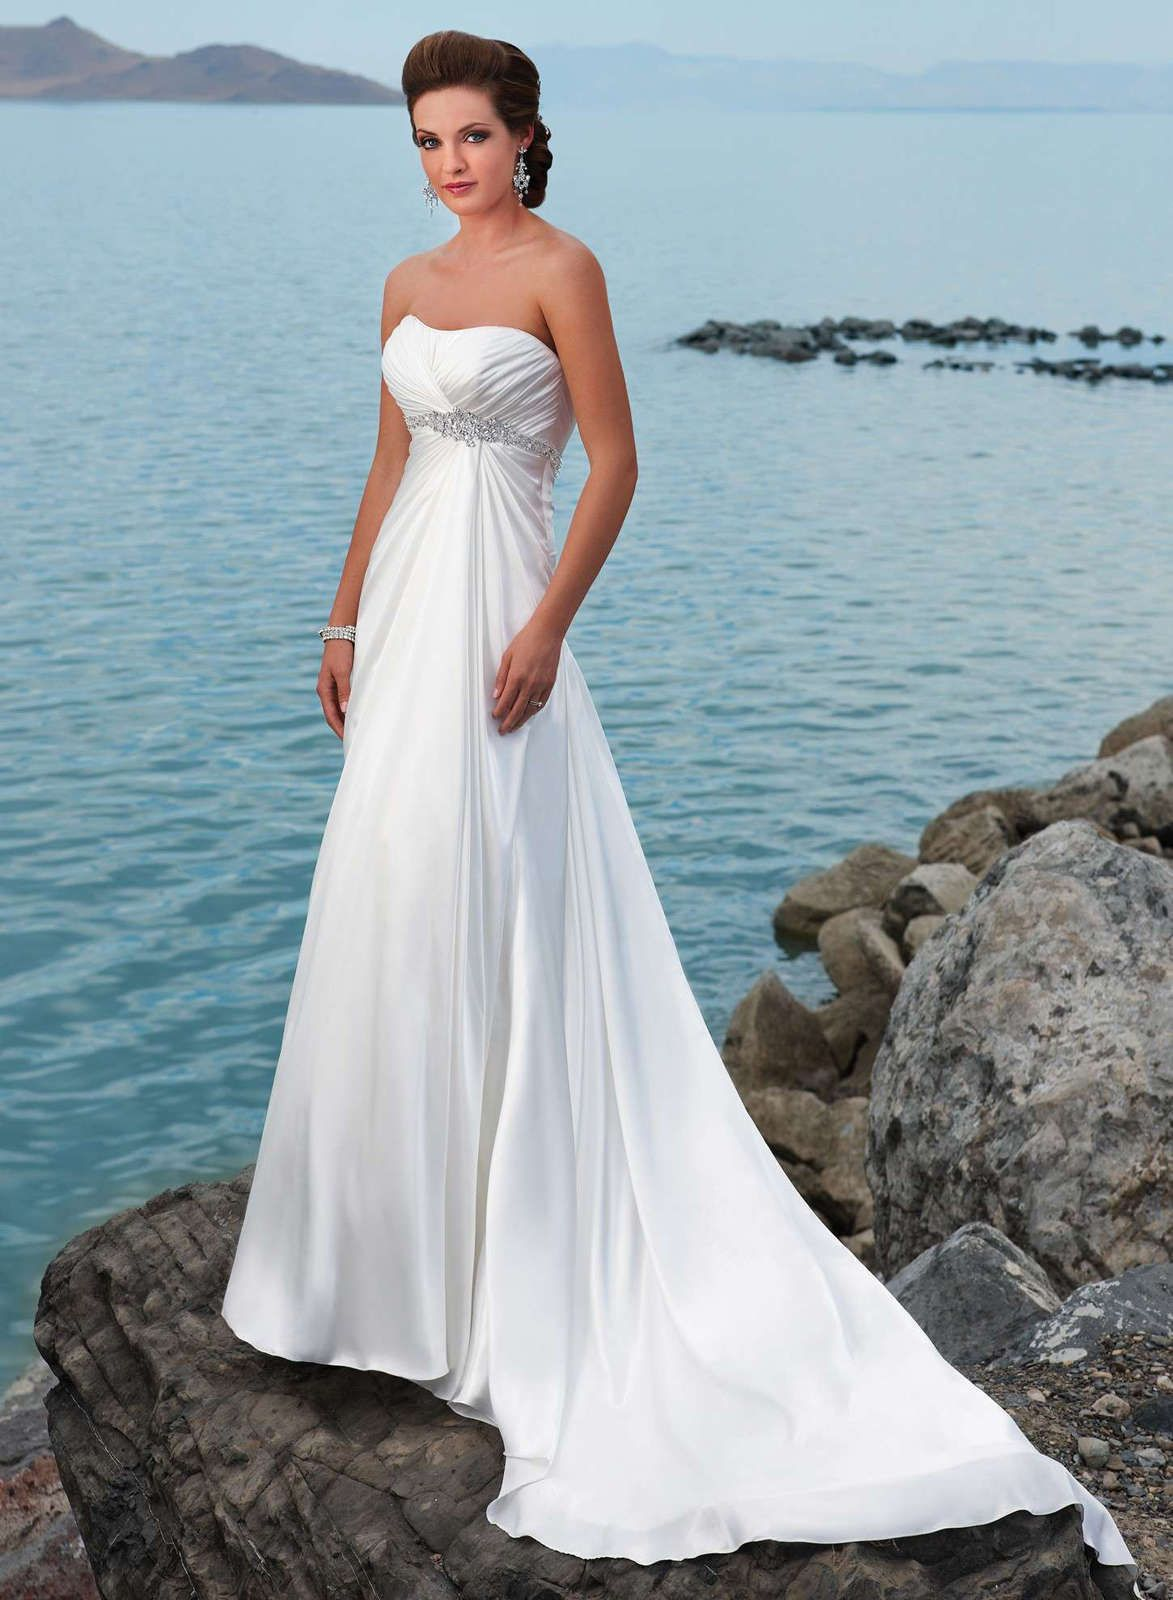 100+ Wedding Dresses for Beach Weddings Cheap - Dress for Country ...